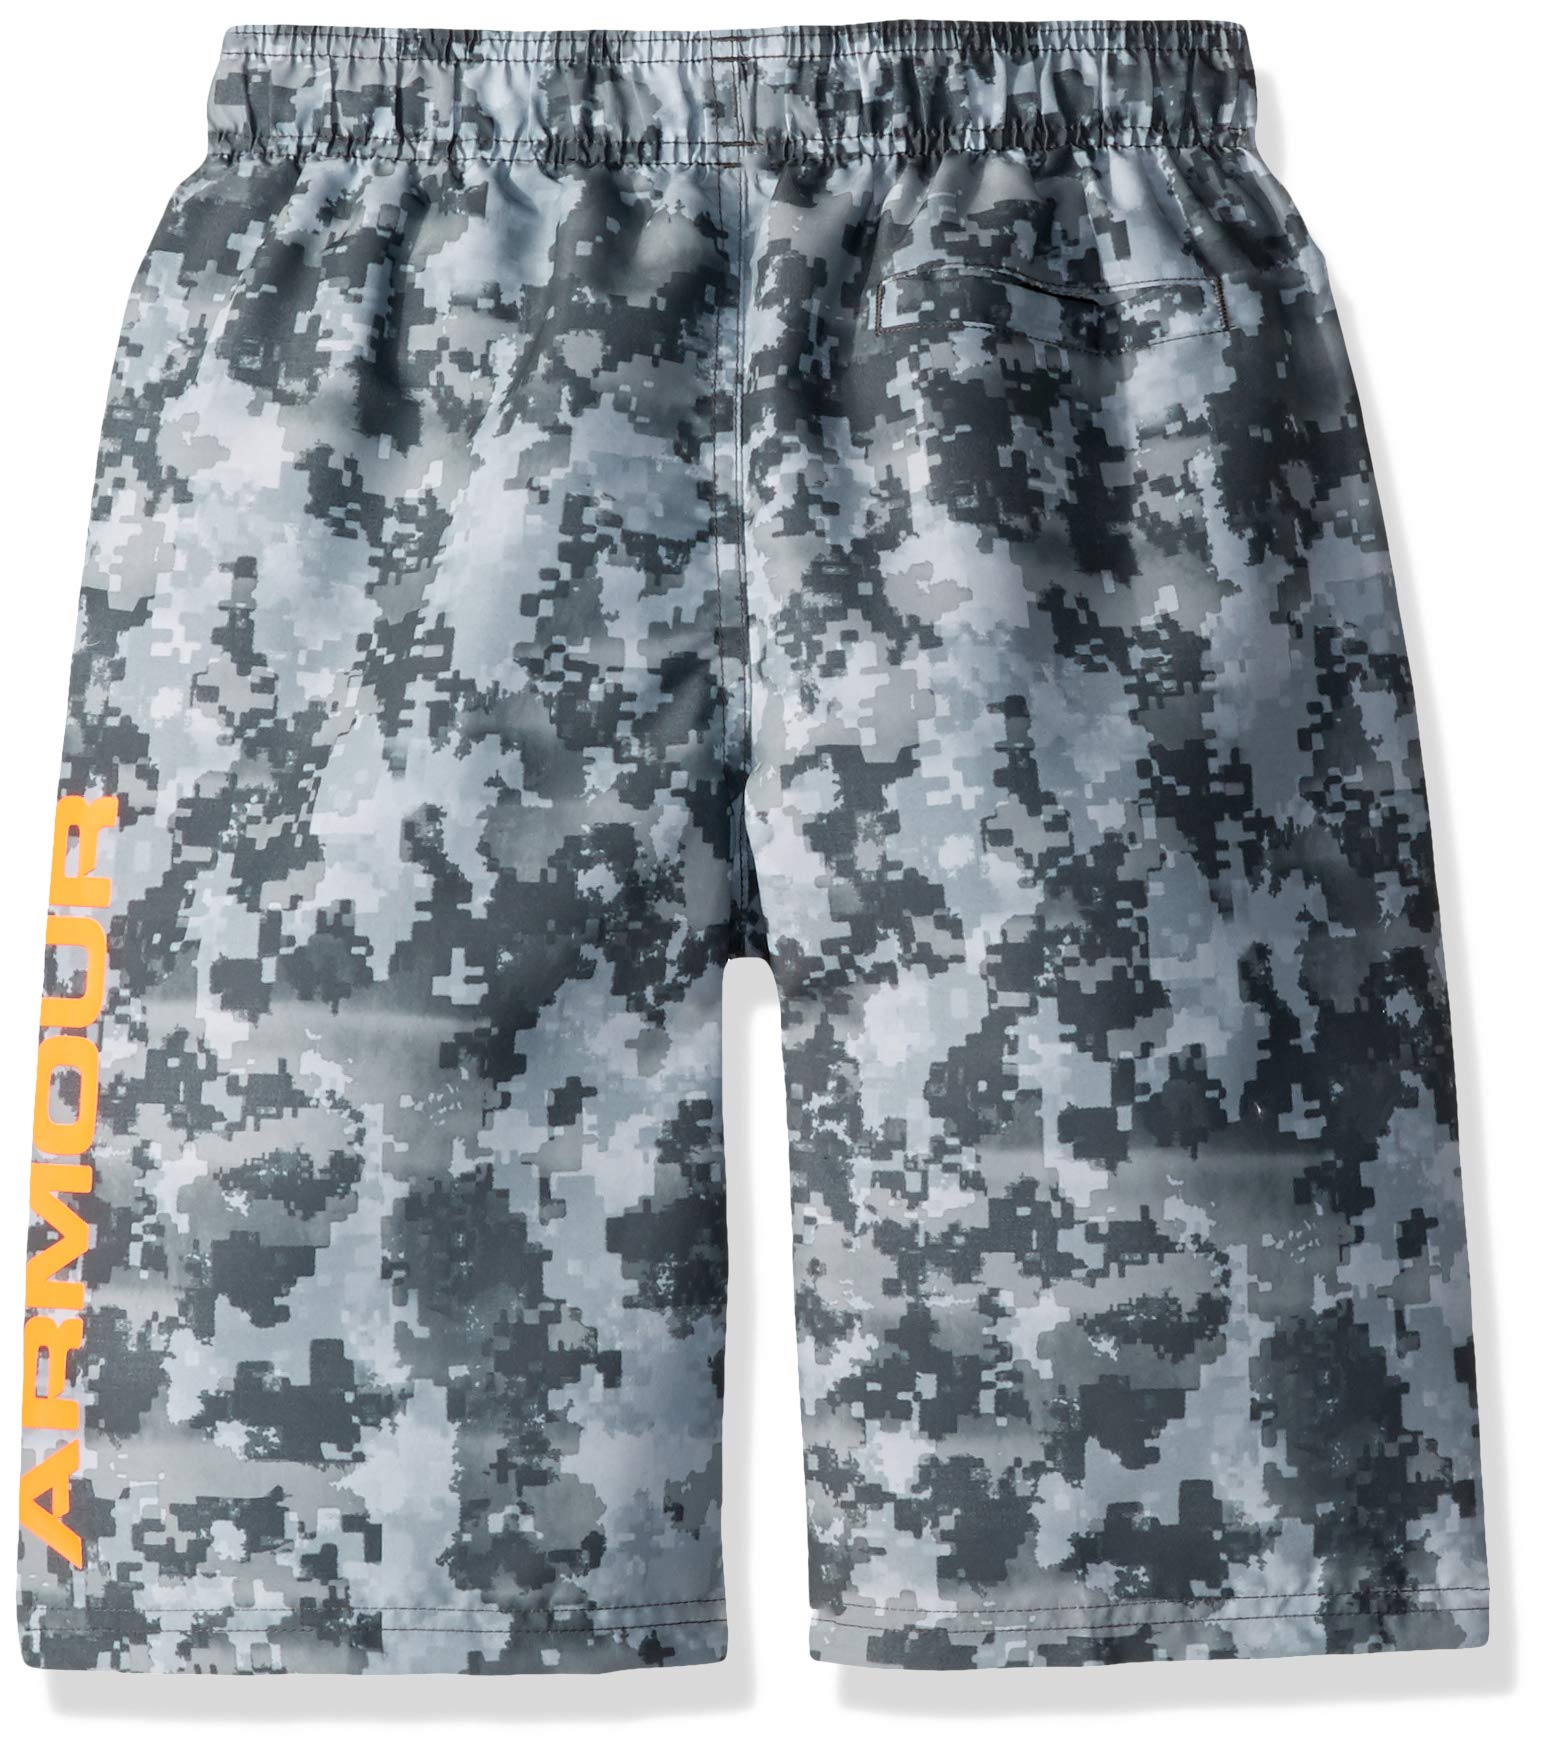 Under Armour Big Boys' Volley Fashion Swim Trunk, Moderate Gray-S19, YSM by Under Armour (Image #2)